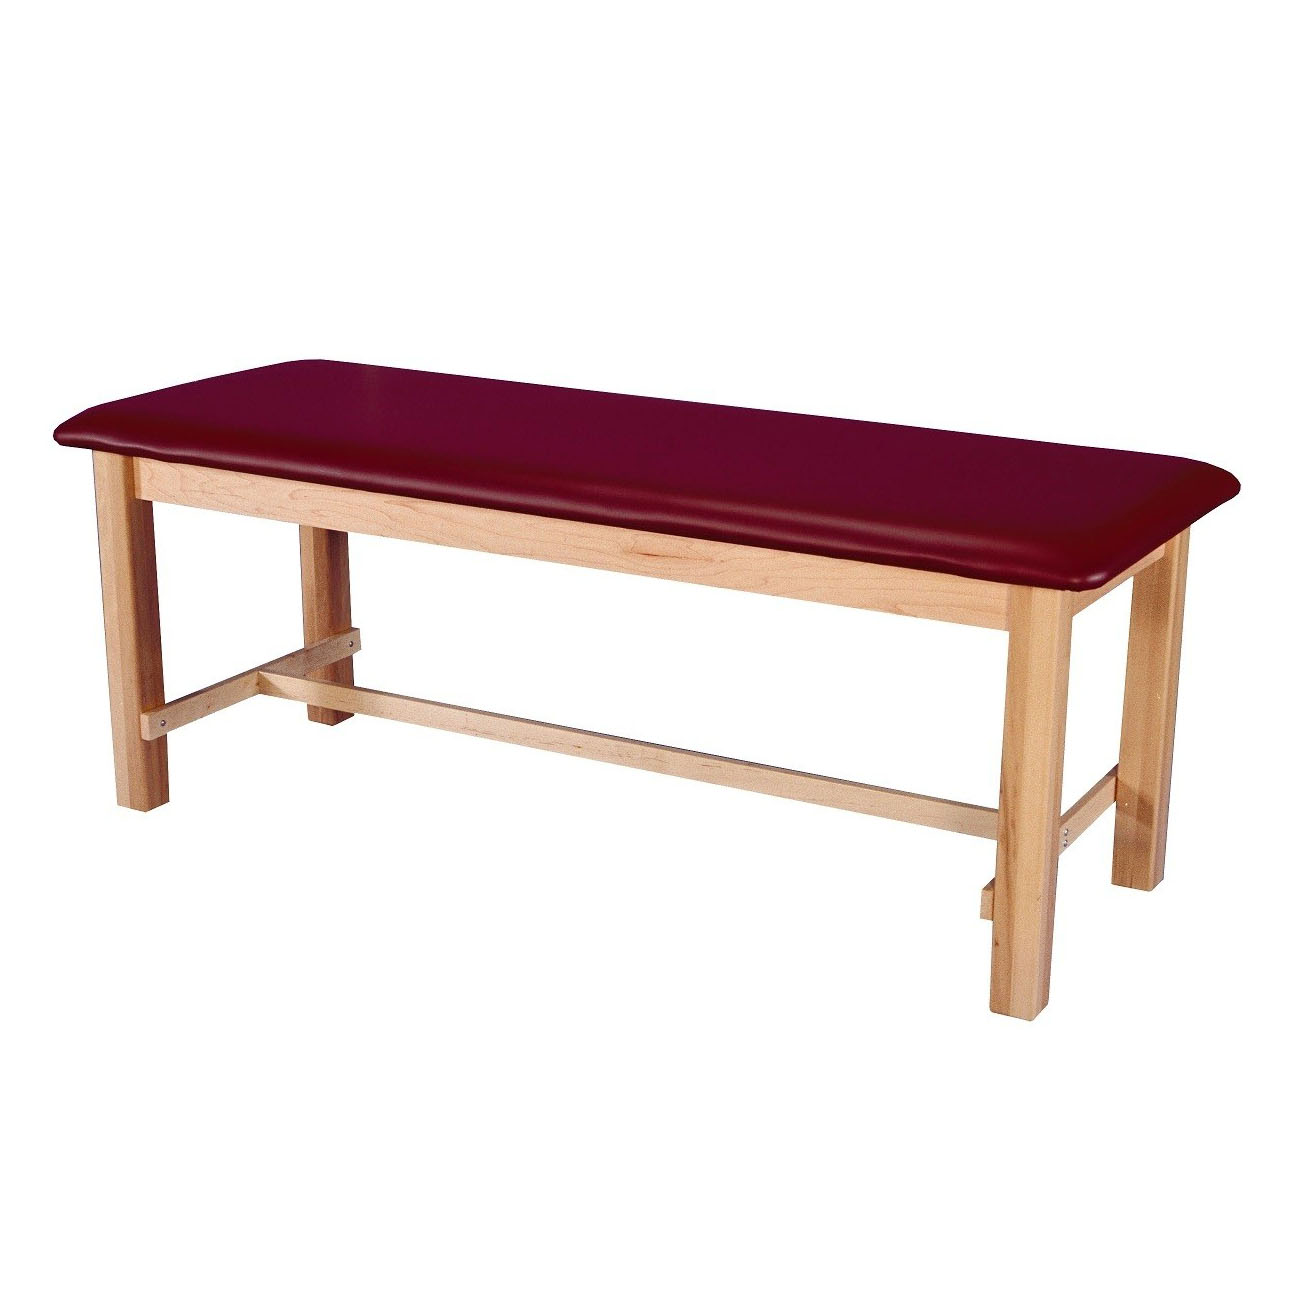 Armedica maple hardwood treatment table